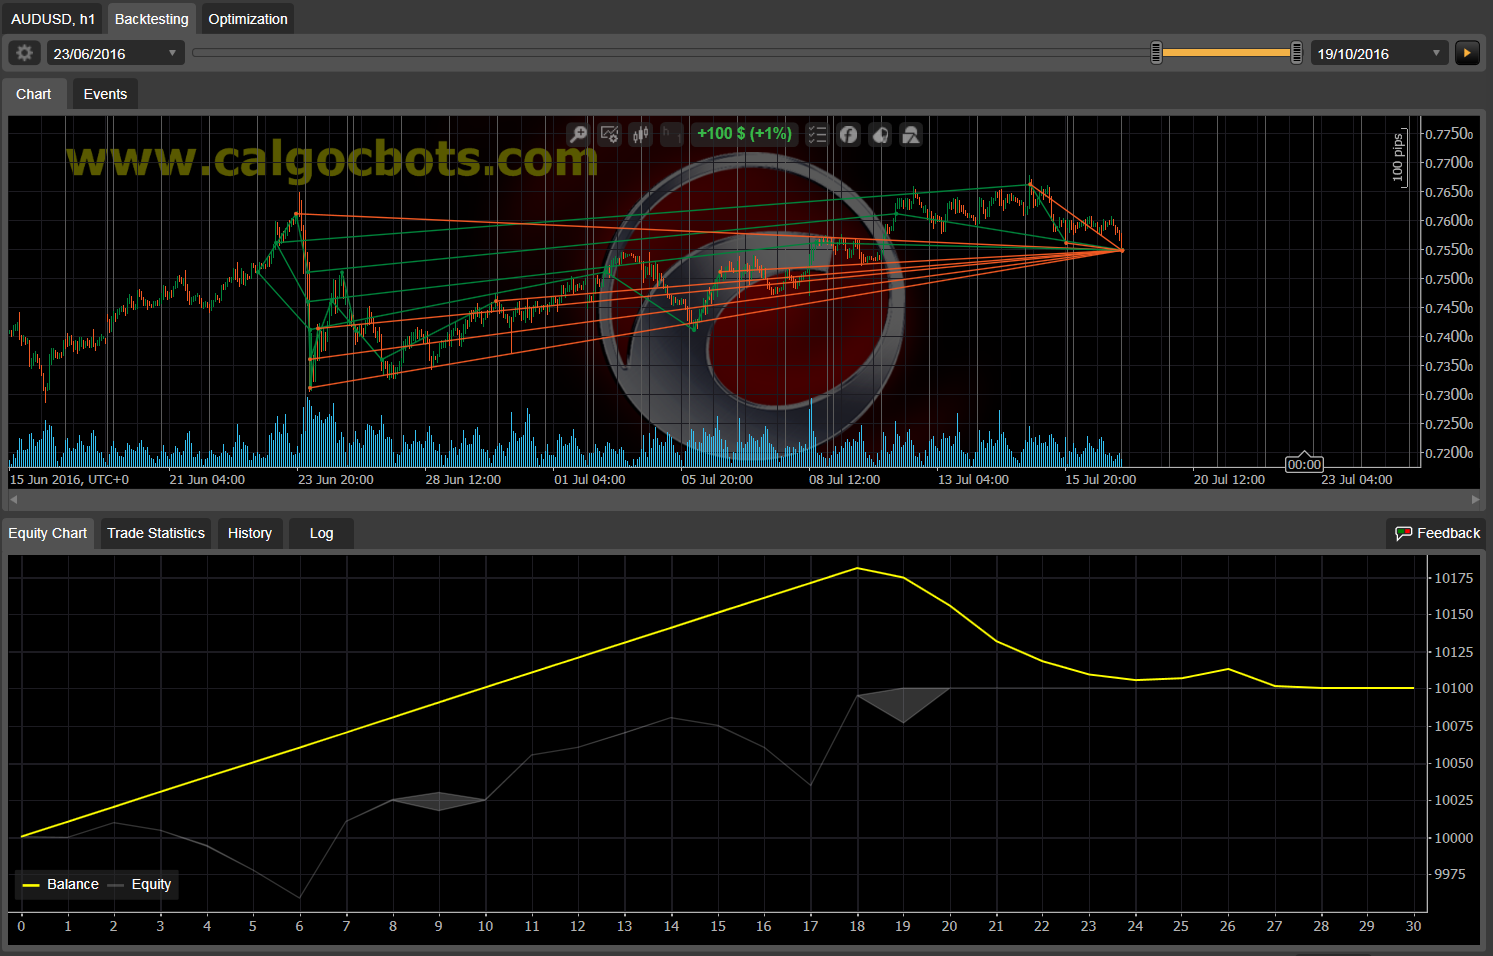 Dual Grid Hedge AUD USD 1h cAlgo cBots cTrader 1k 100 50 100 - 11 b